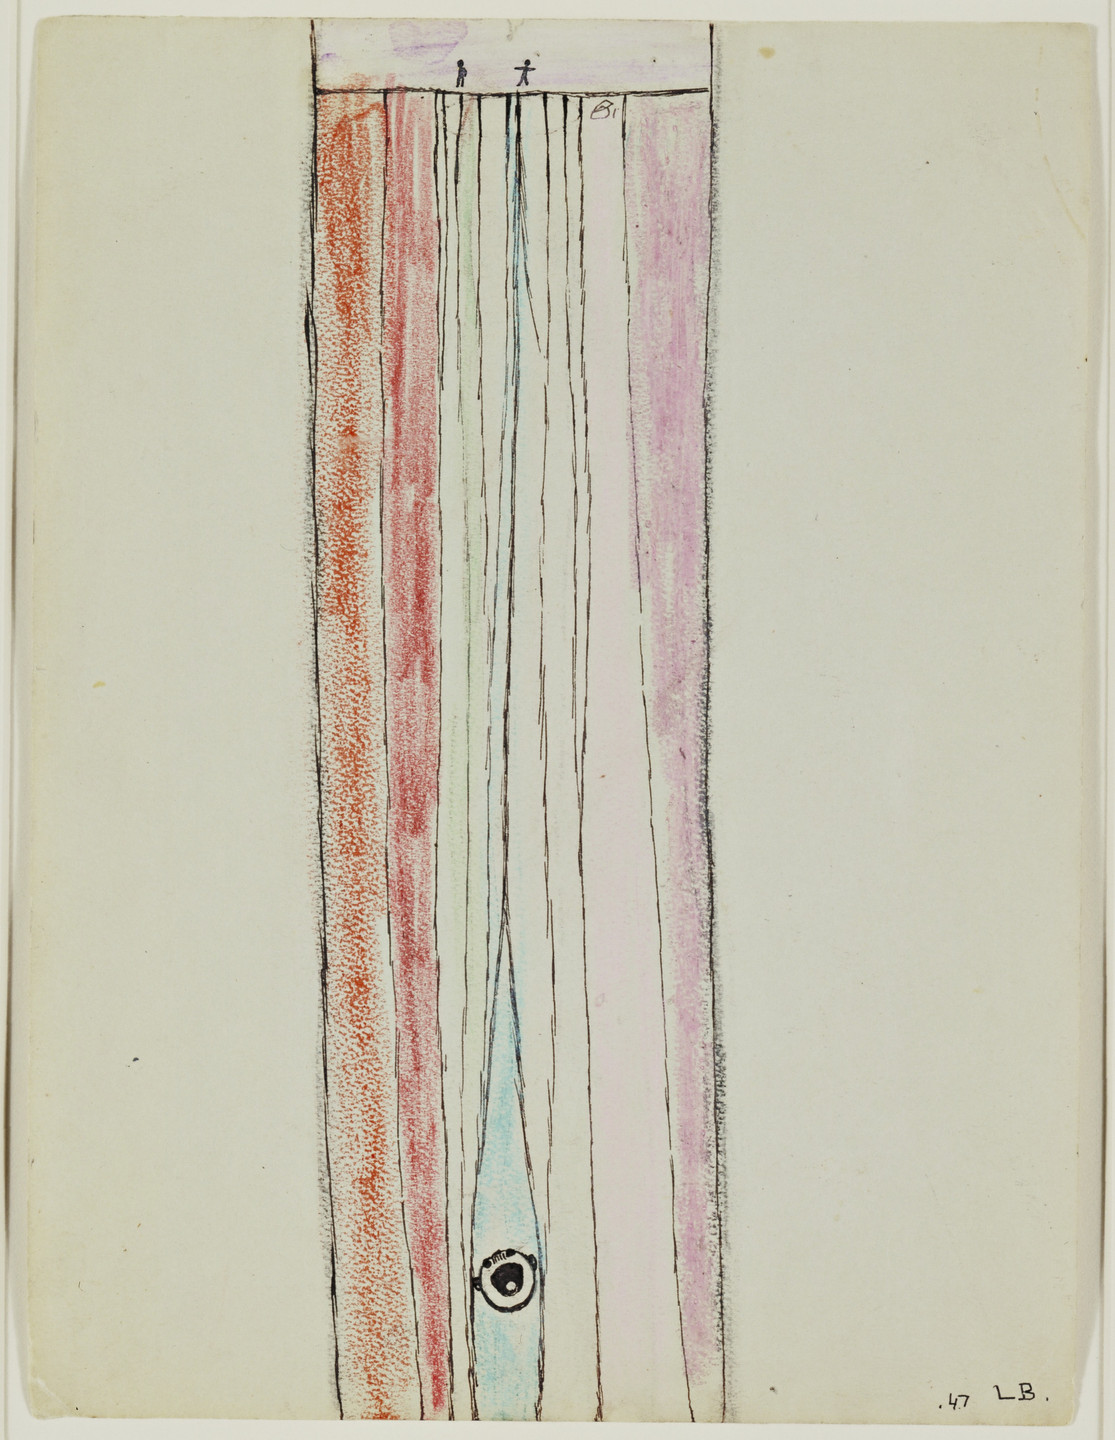 Louise Bourgeois. Untitled. c. 1943